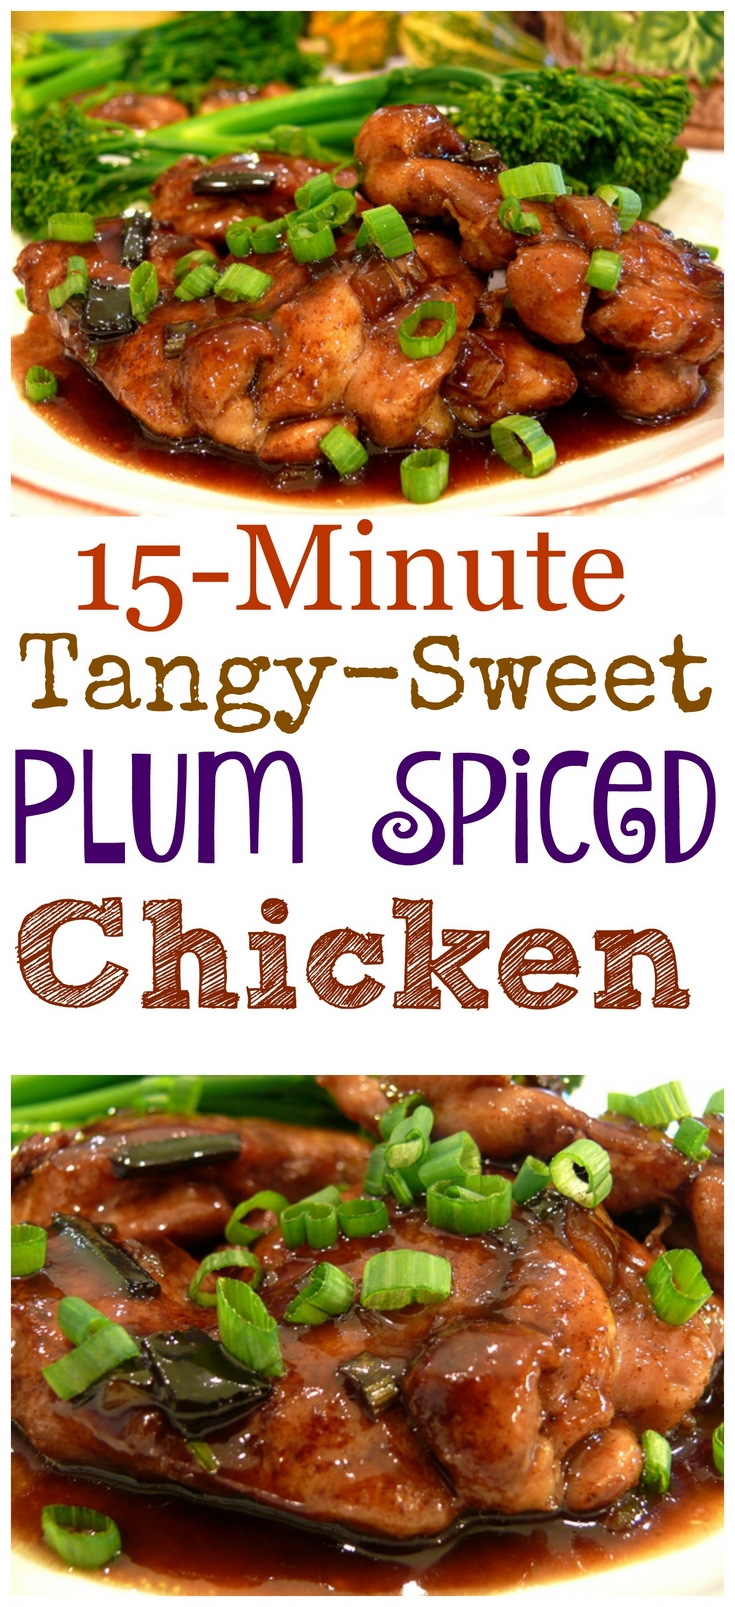 VIDEO + Recipe: The dish my kids beg me to make again and again, this 15-Minute Tangy-Sweet Plum-Spiced Chicken has been a family favorite for years. It's the perfect meal to make when you are short on time in the kitchen. from NoblePig.com. via @cmpollak1